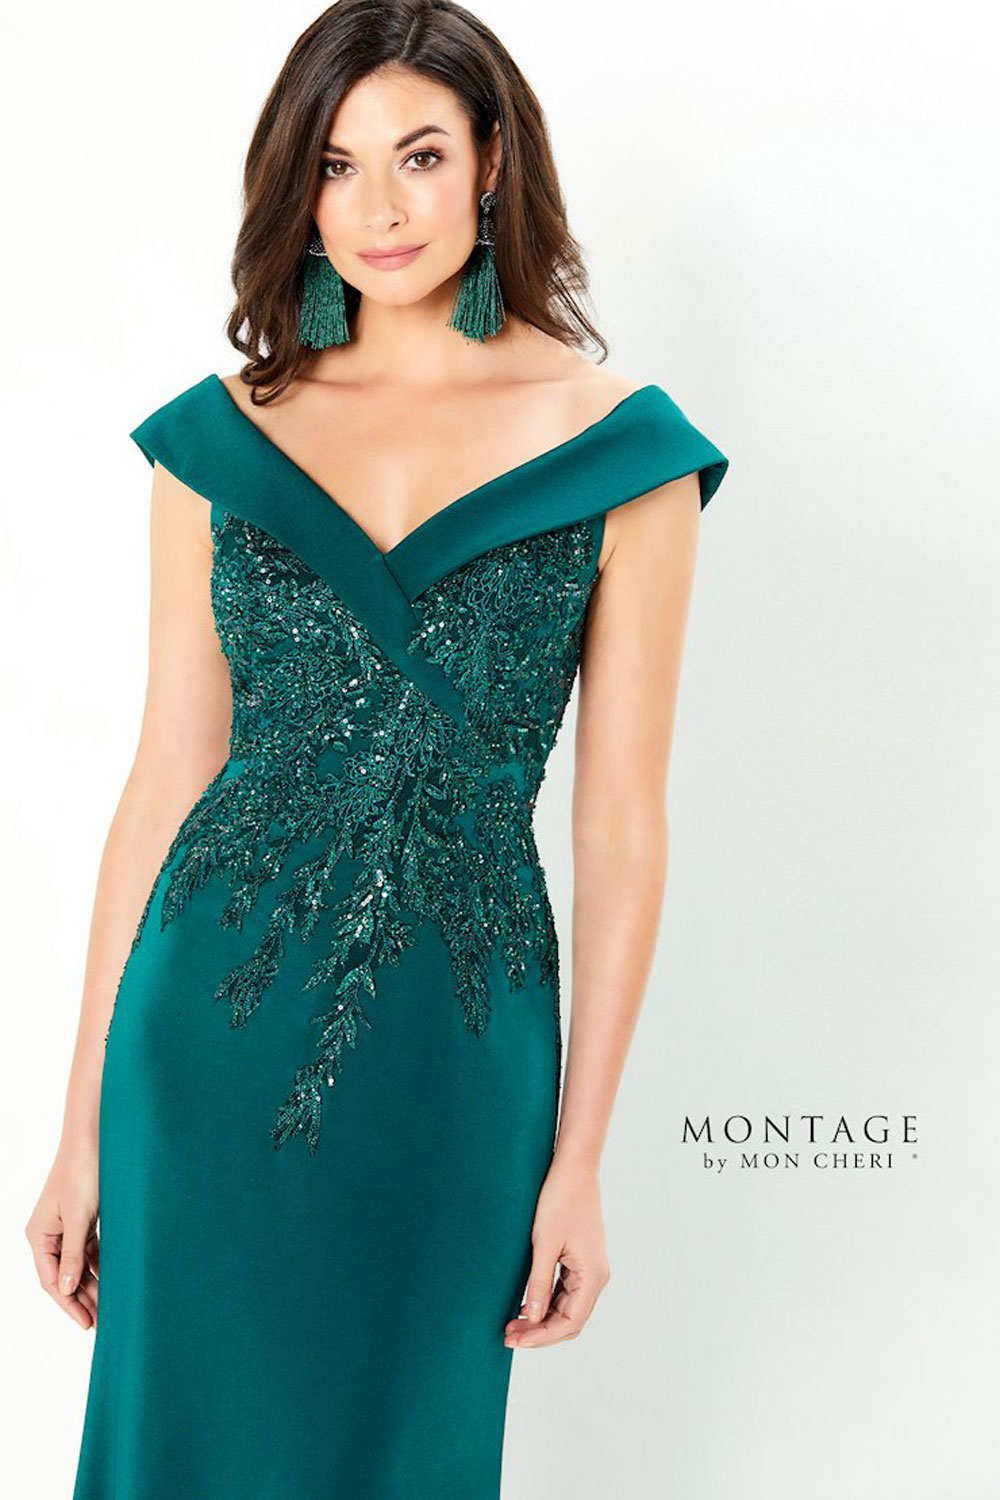 Fit & flare, off the shoulder, comes in navy blue & emerald